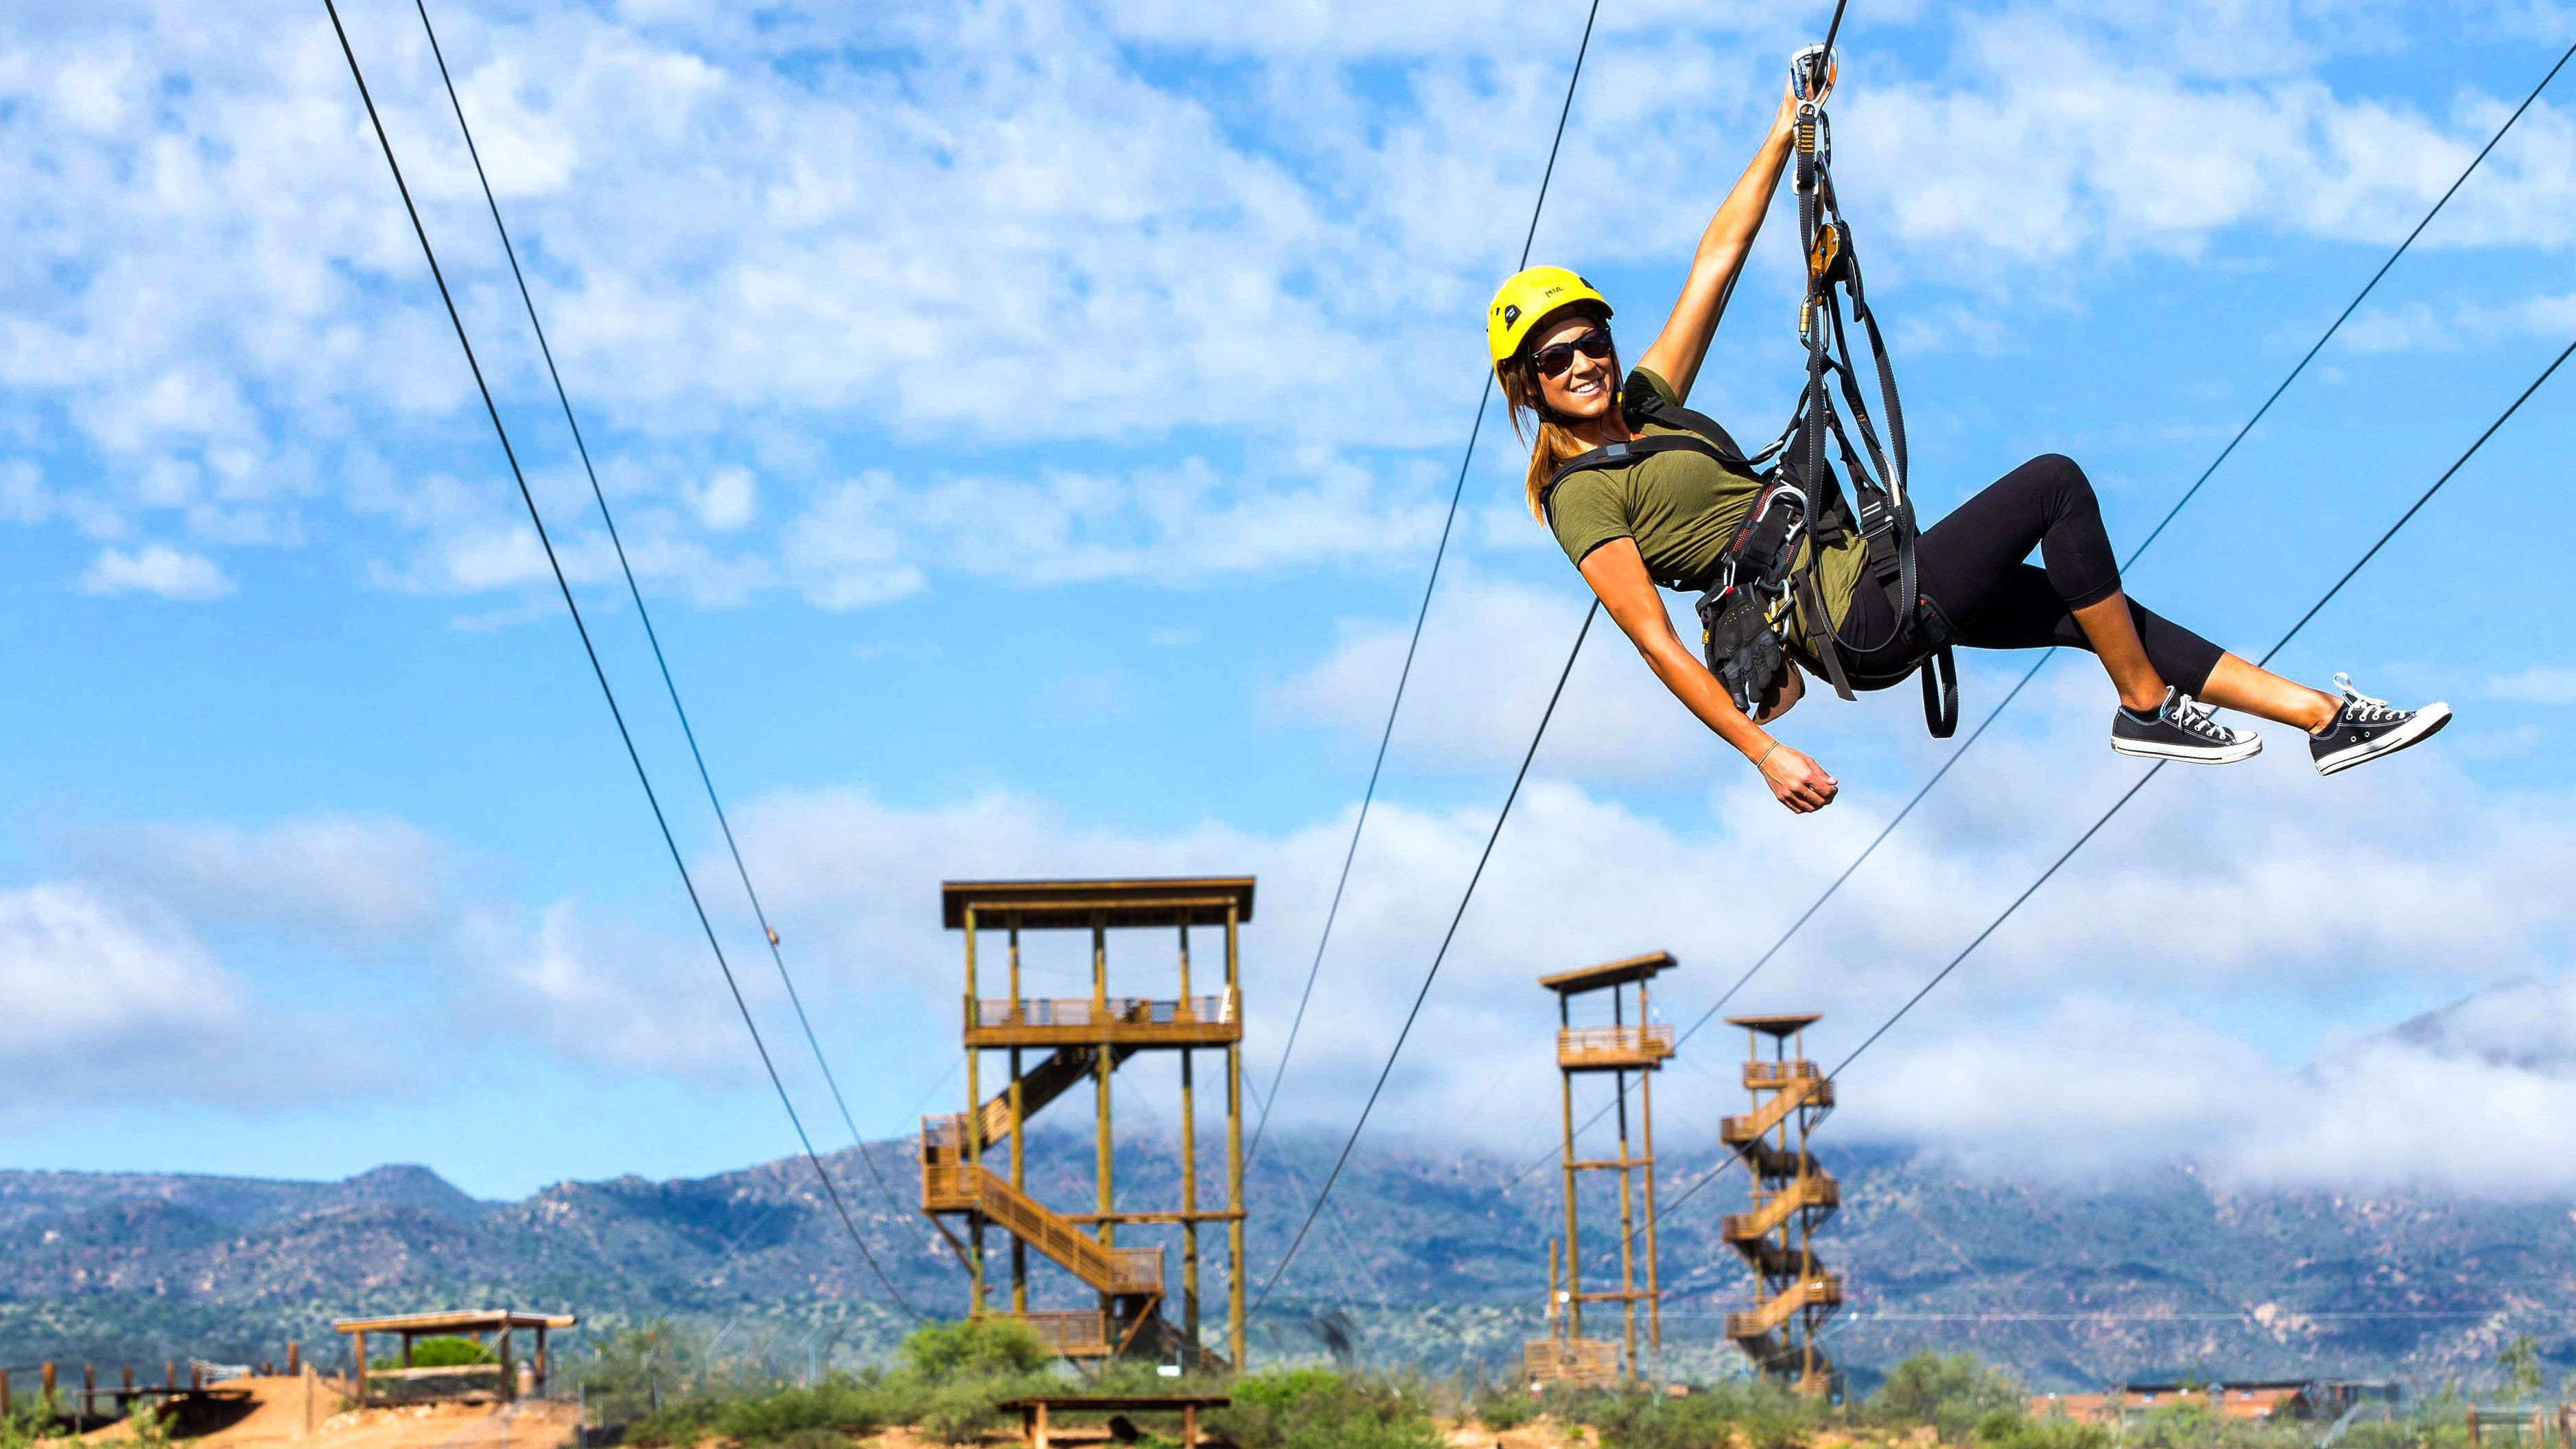 Zipline Adventure at Out of Africa Wildlife Park